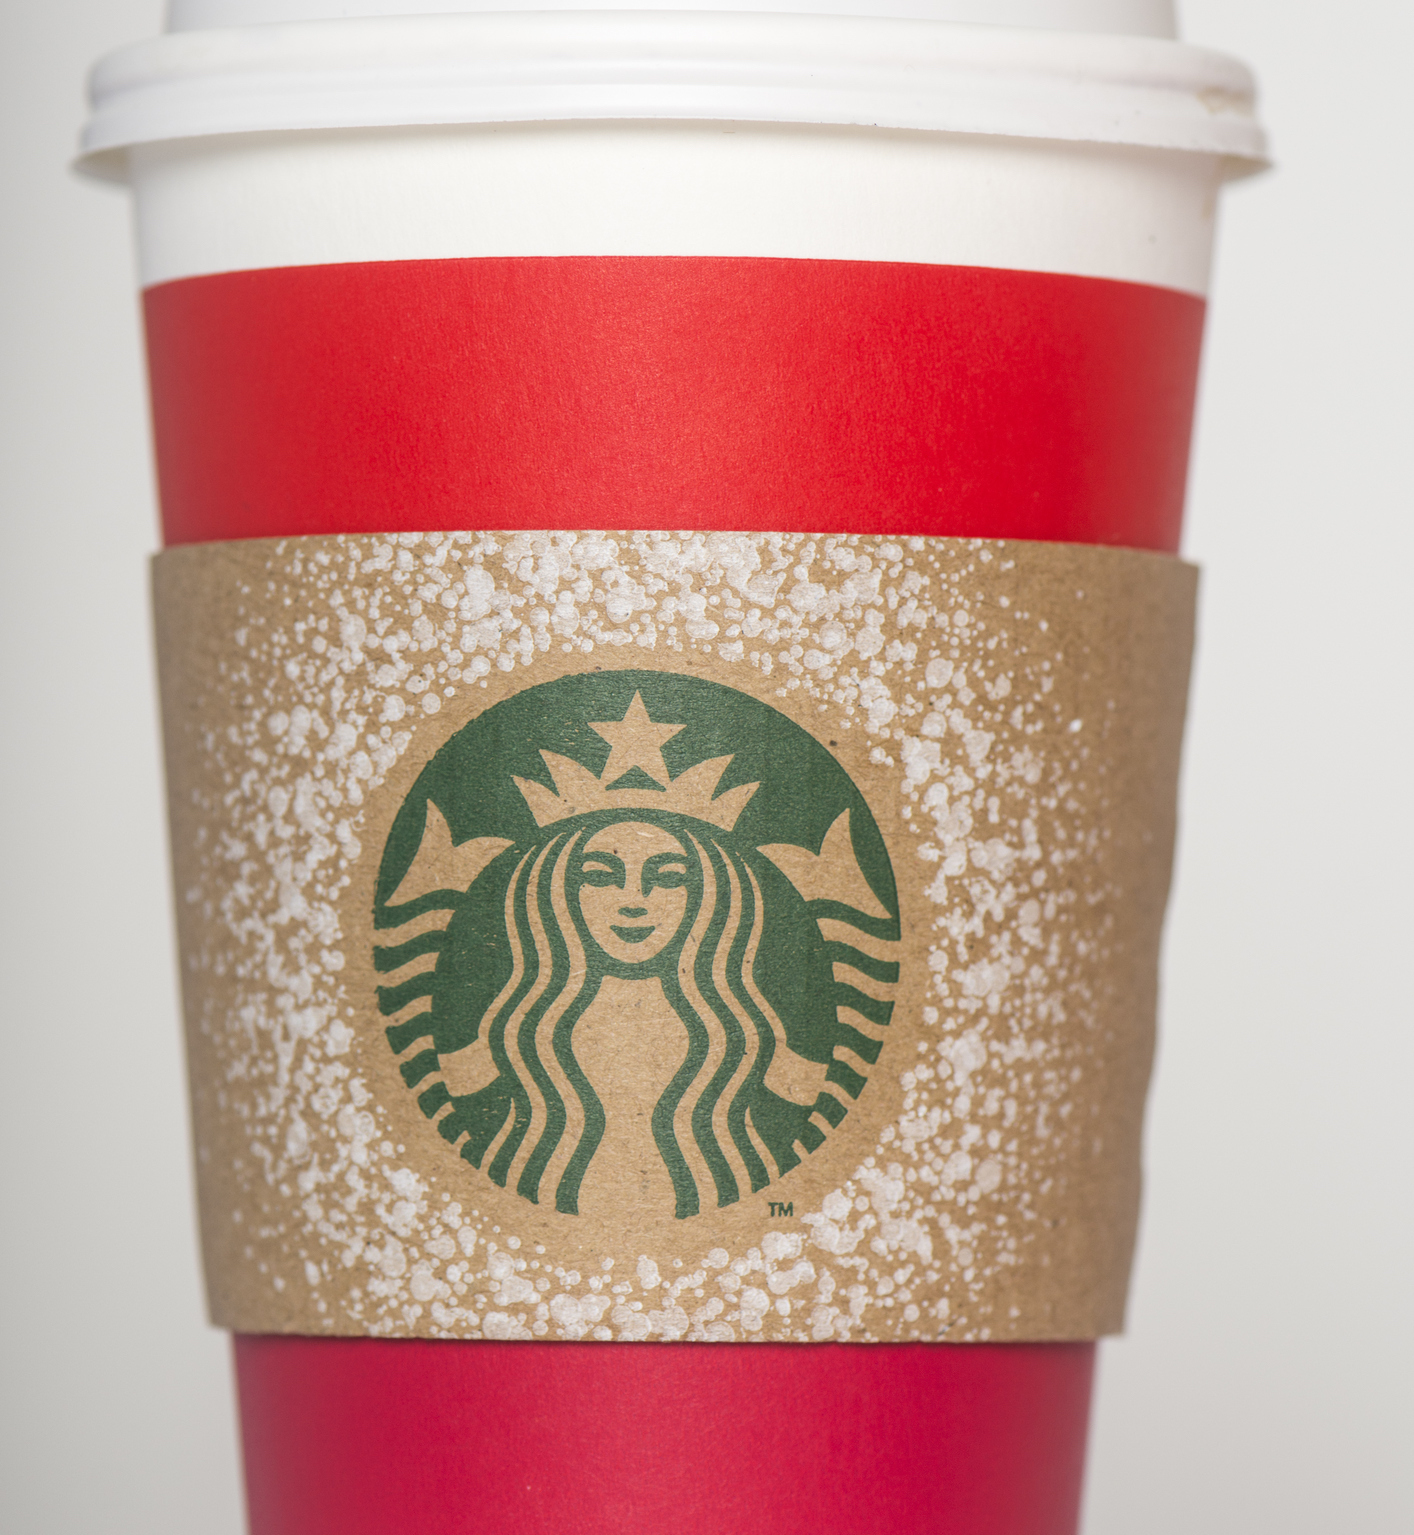 Surprise! Starbucks is dropping its holiday cups and drinks *today*